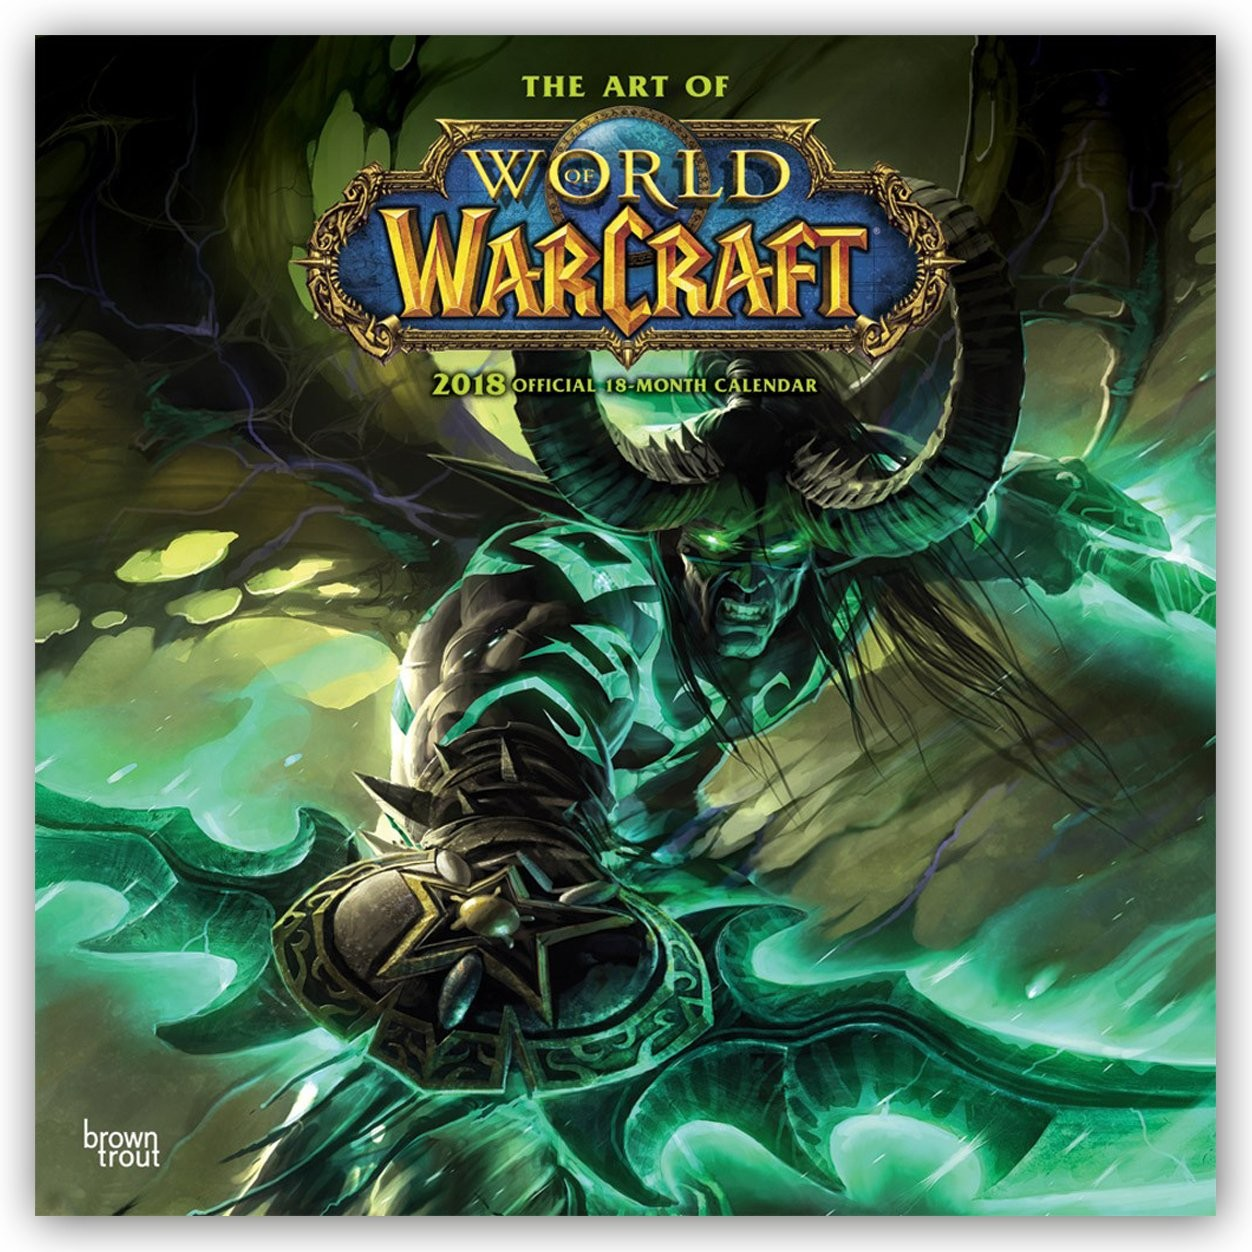 World of Warcraft - Calendars 2019 on UKposters/EuroPosters